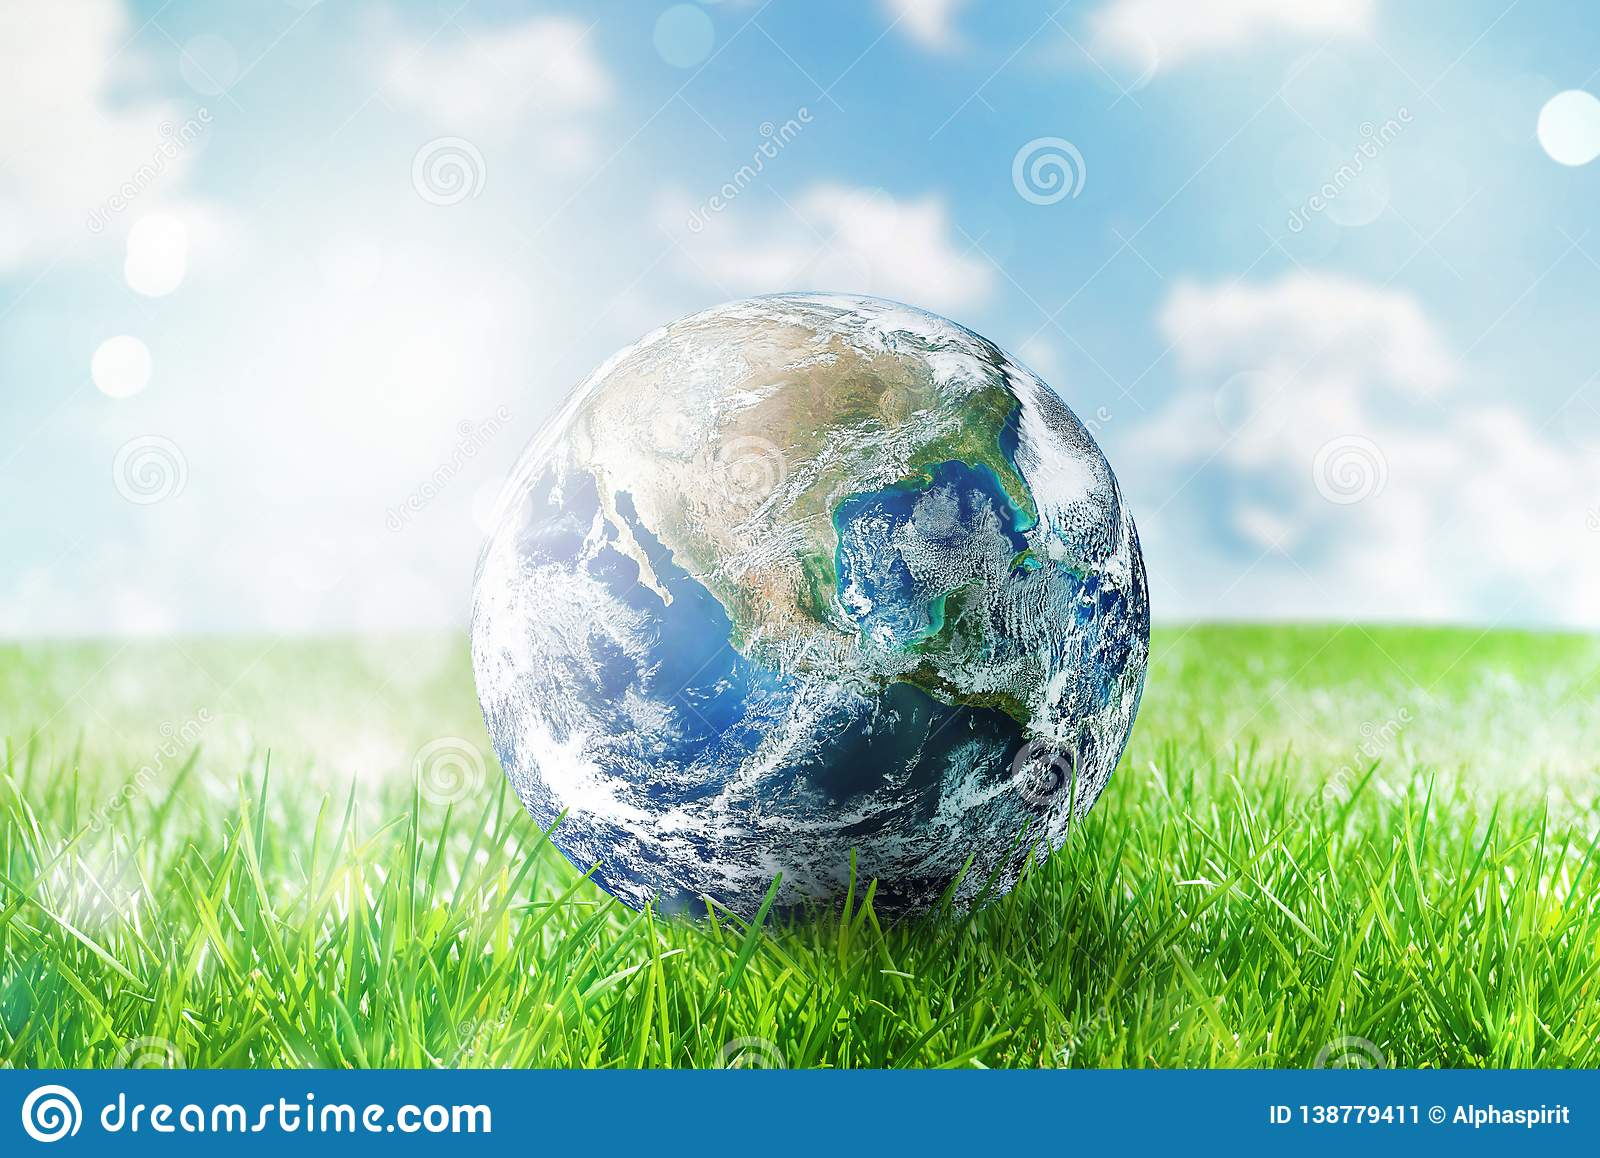 Earth globe in a green pristine field. World provided by NASA